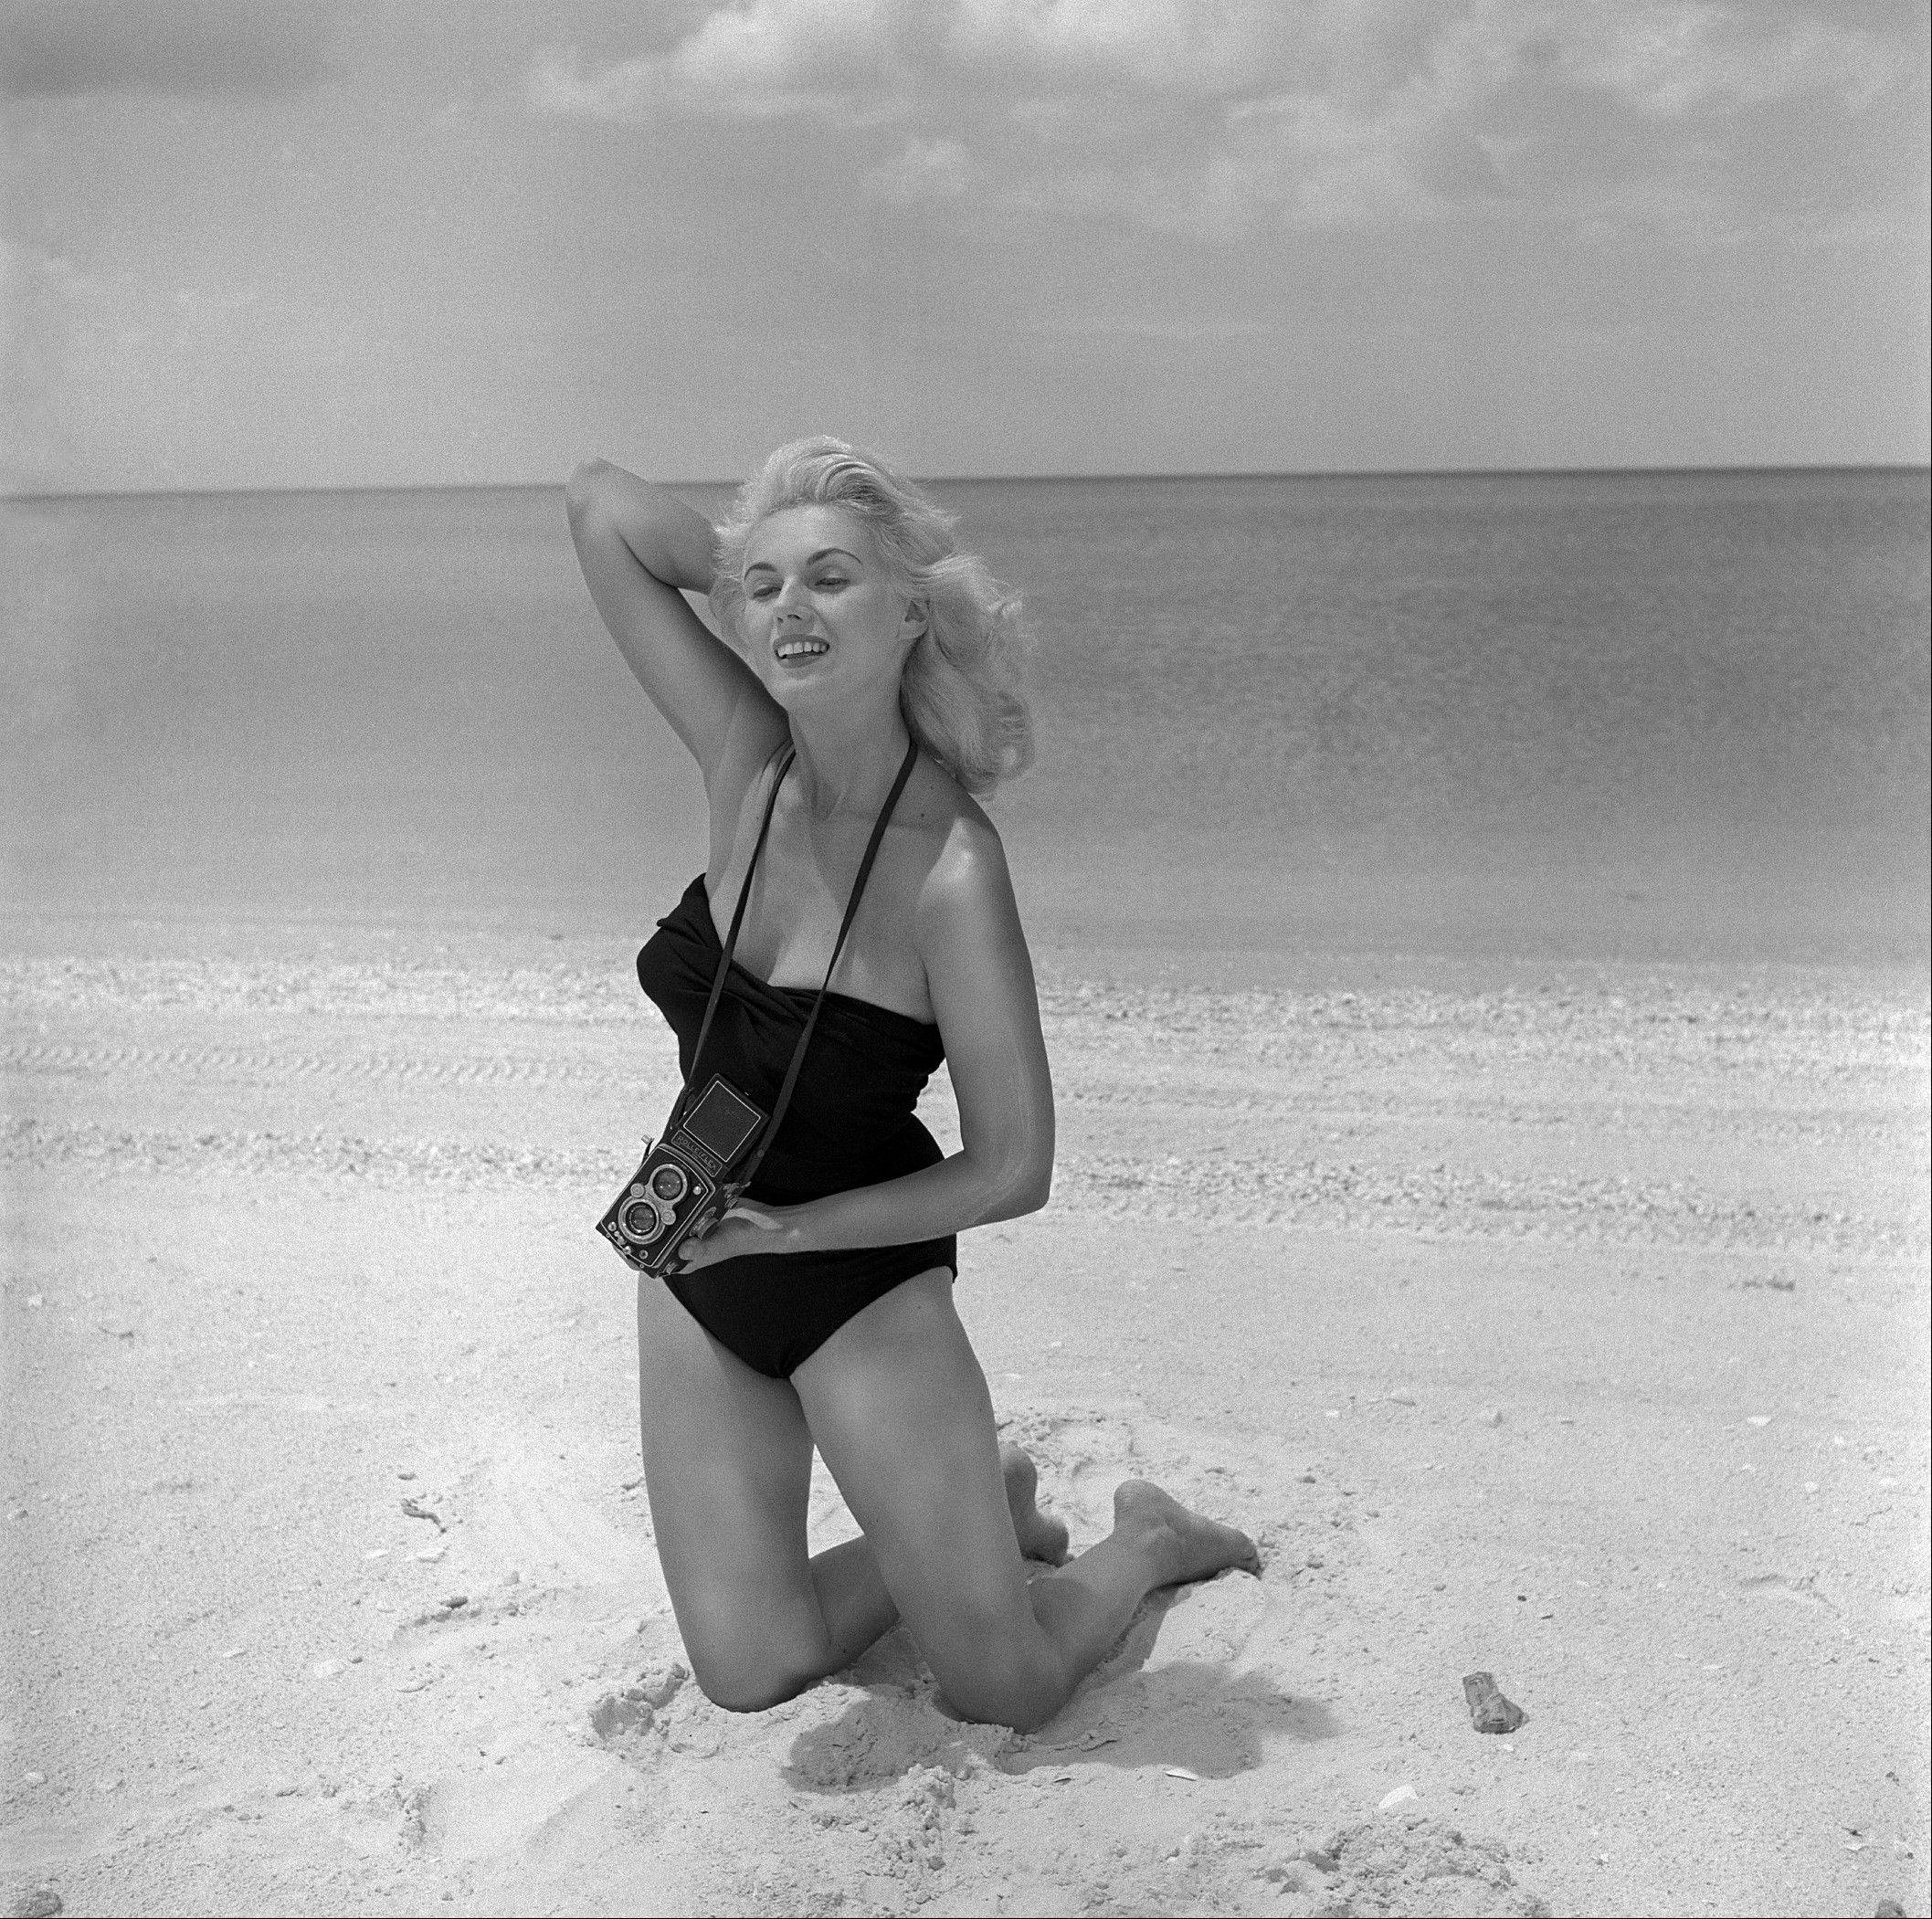 Bunny Yeager was a model who become a pinup photographer in the 50s and 60s.